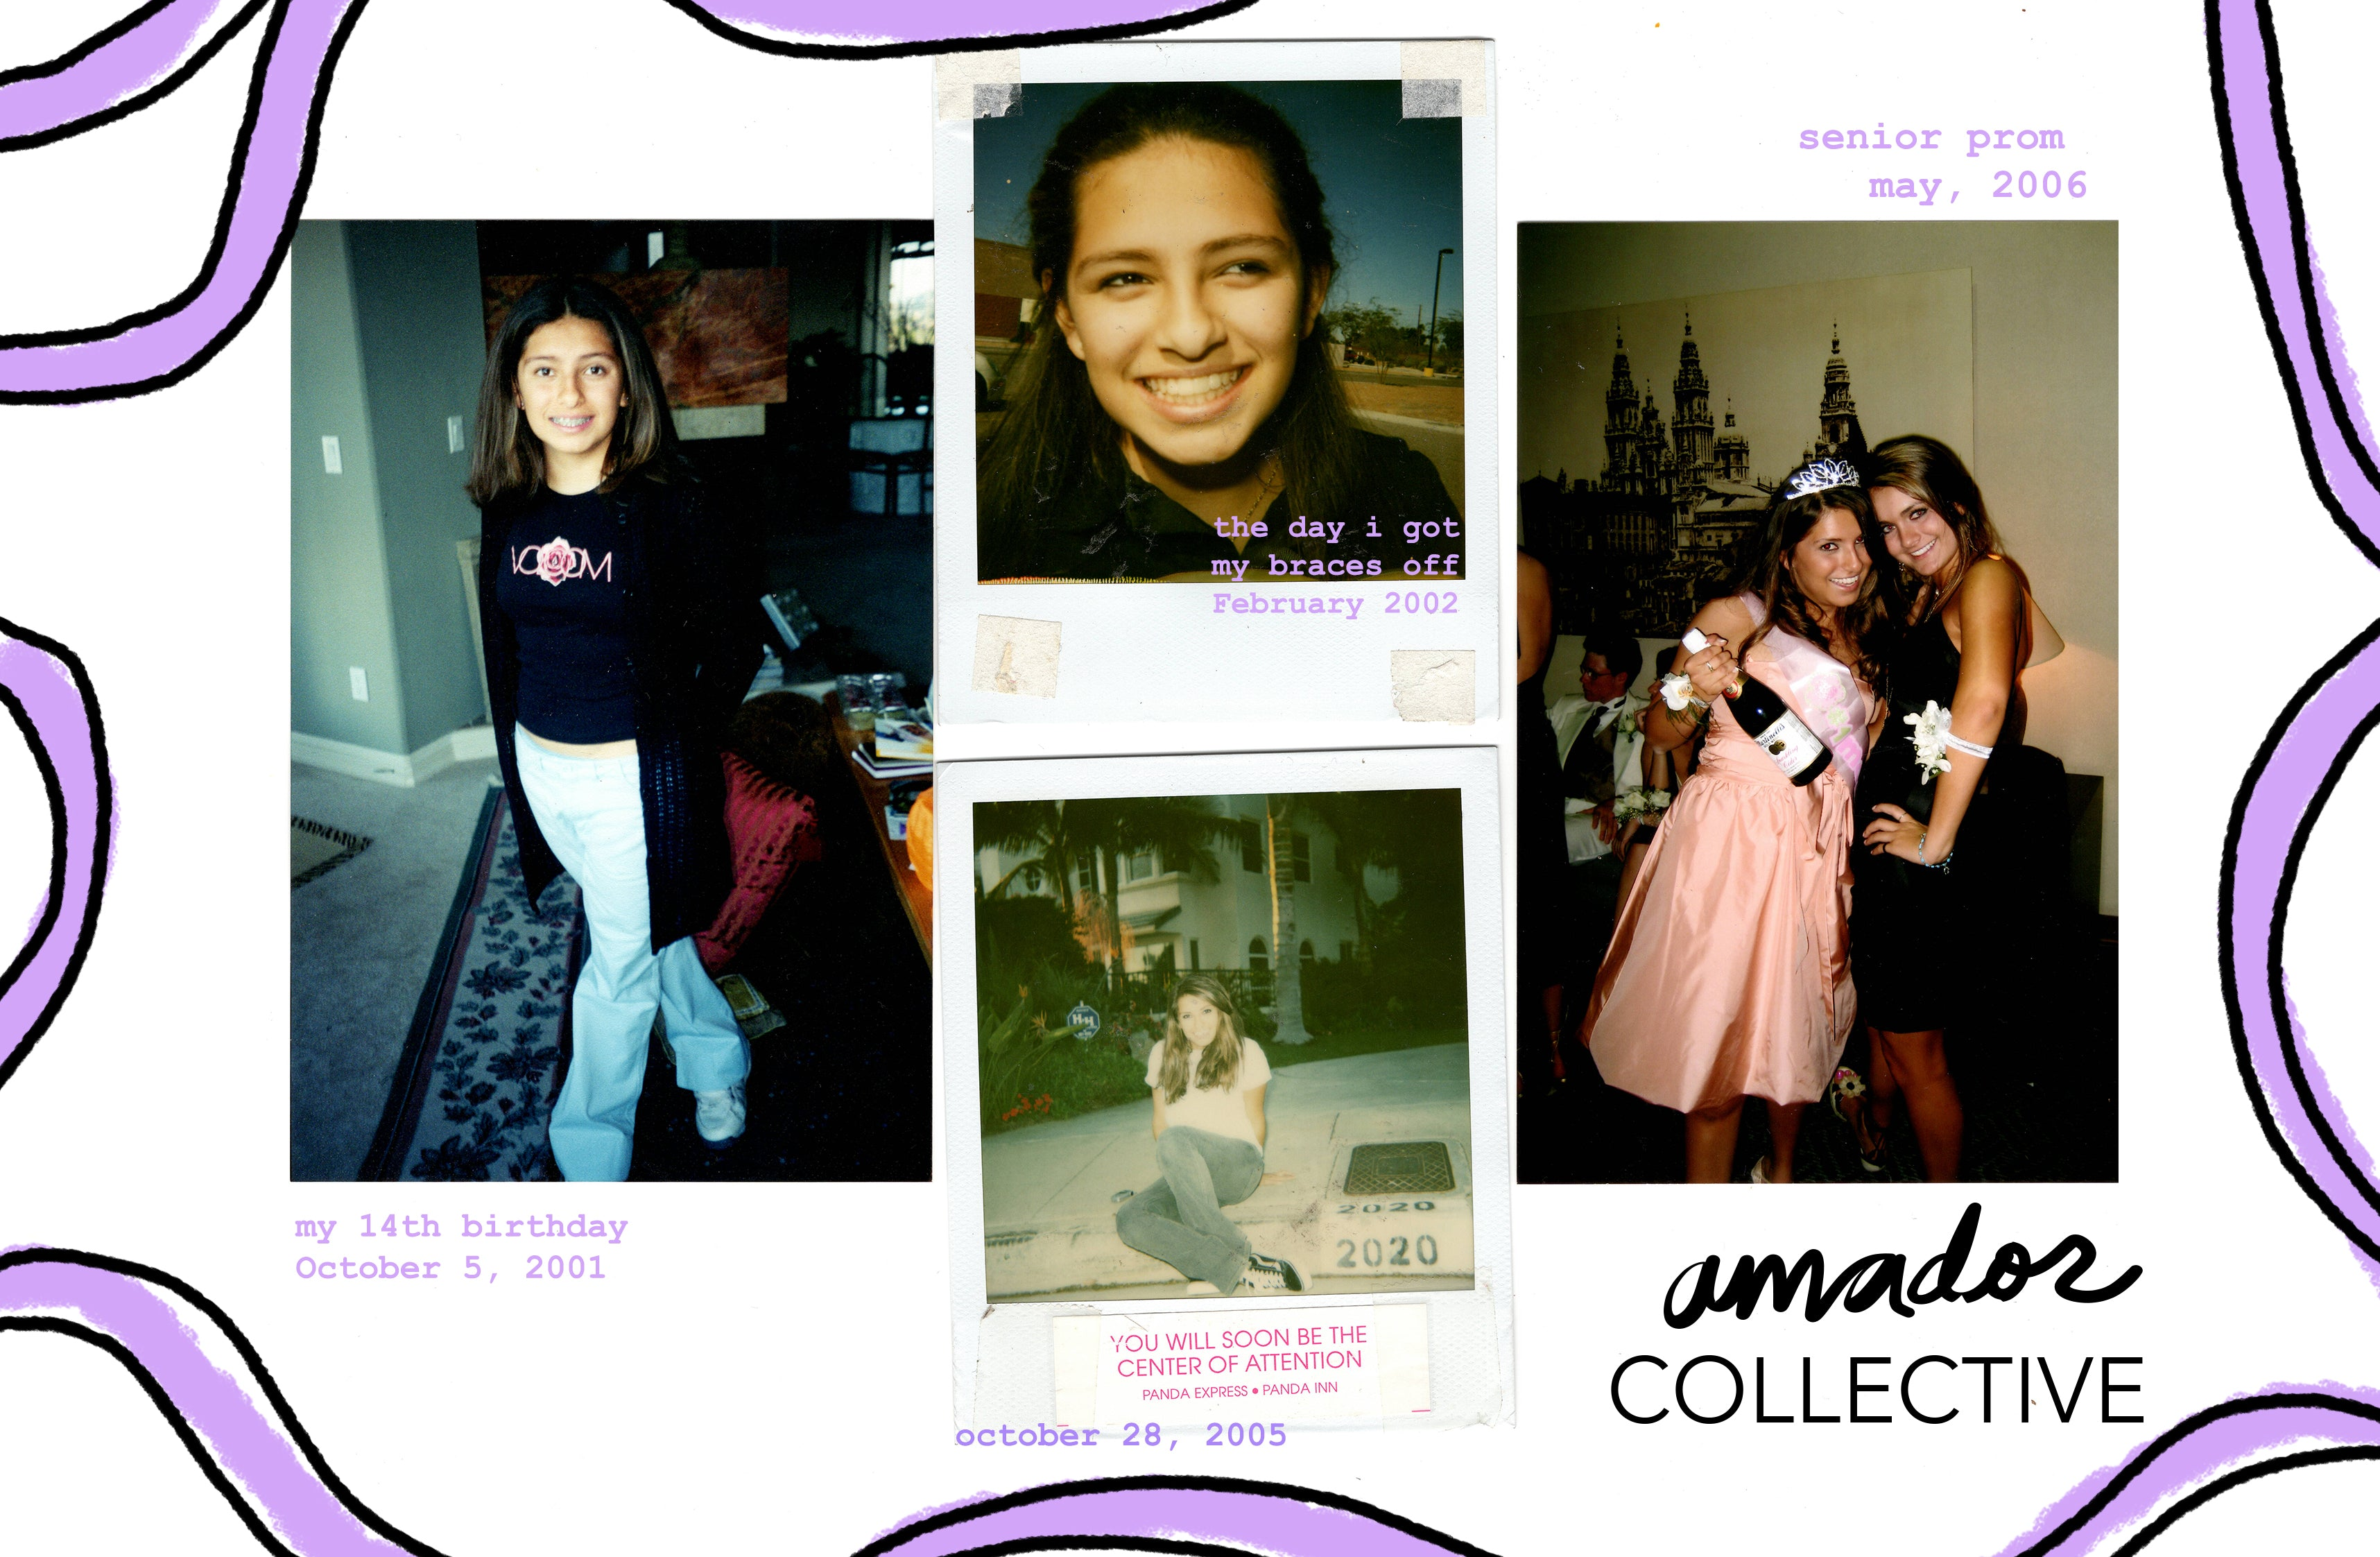 Amador Collective History aka Daniela Garcia Allie timeline small business